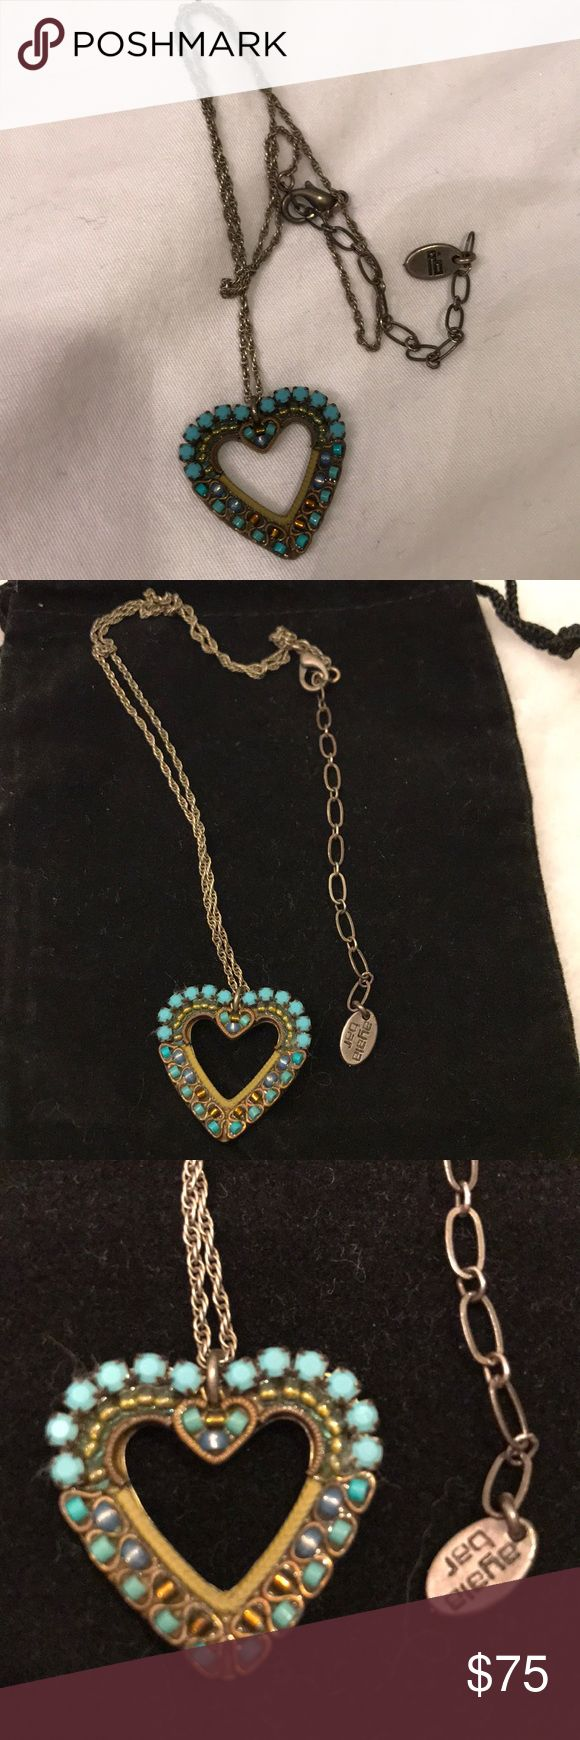 Ayala Bar Turquoise Heart Necklace Heart is approx  I in x I in . Heart is surrounded by turquoise colored beads & stones . In very good condition with no flaws . Ayala Bar Jewelry Necklaces